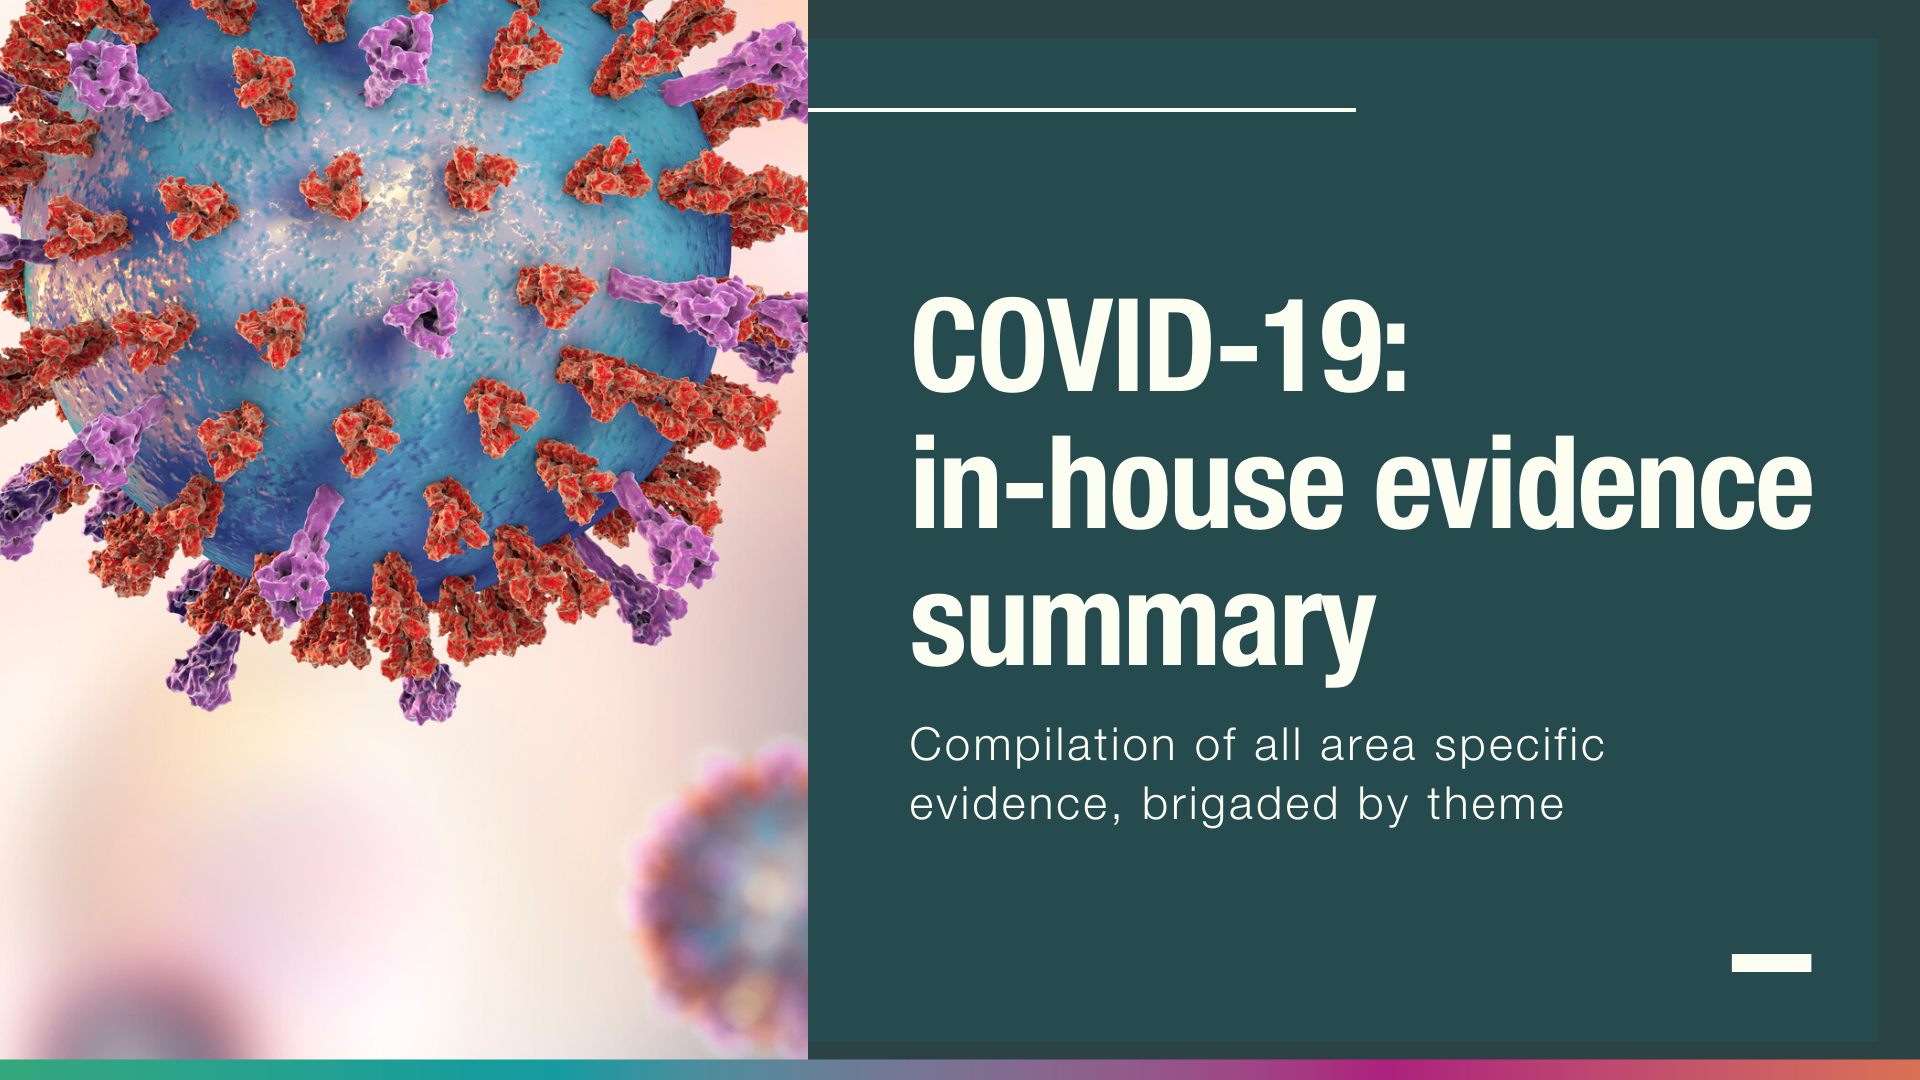 COVID-19 in-house evidence summary